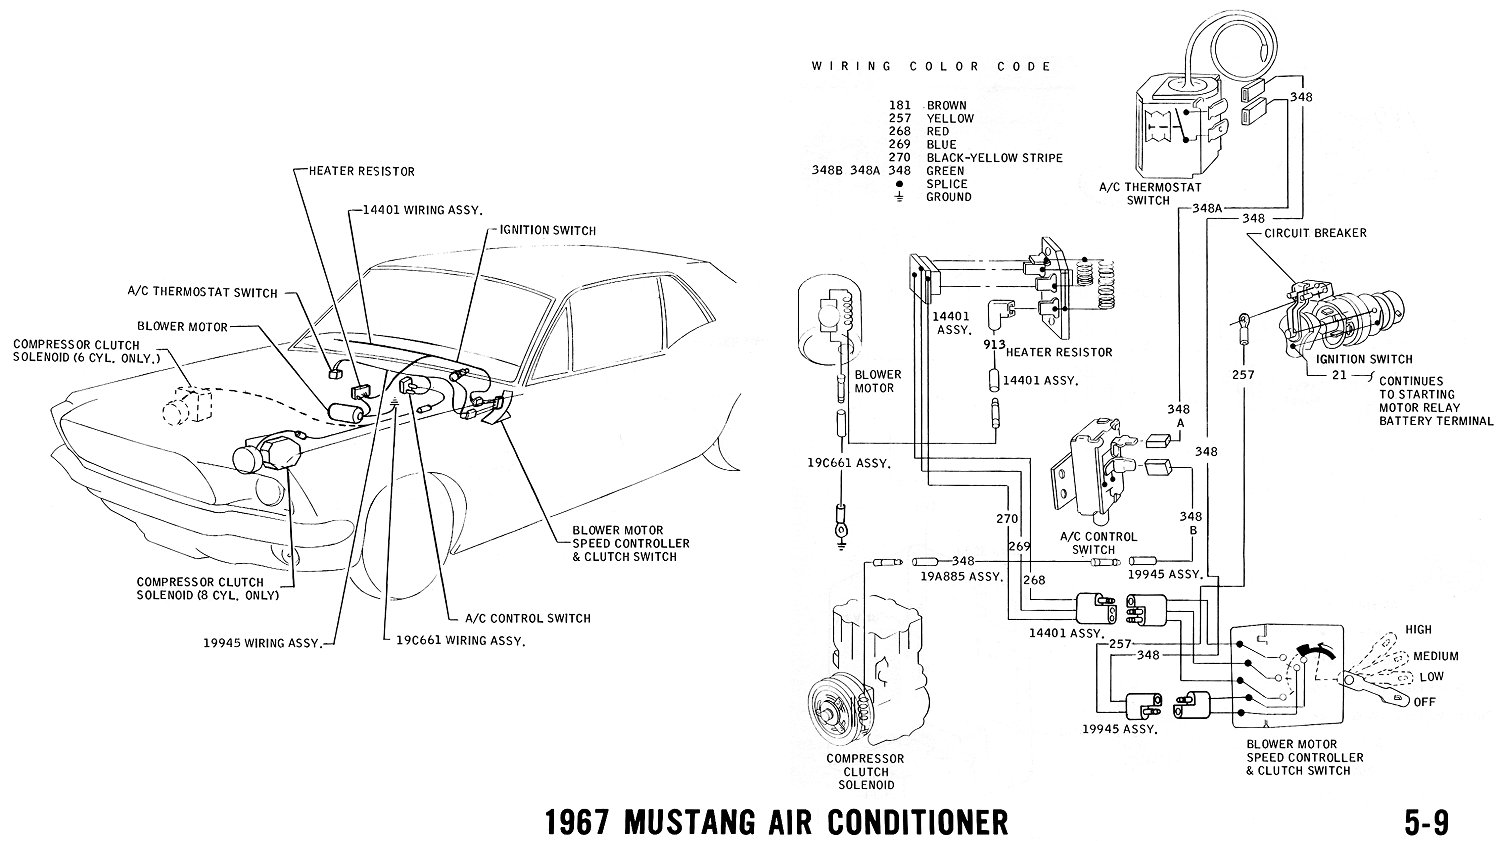 1967 Mustang Wiring And Vacuum Diagrams on 1968 corvette wiper motor wiring diagram